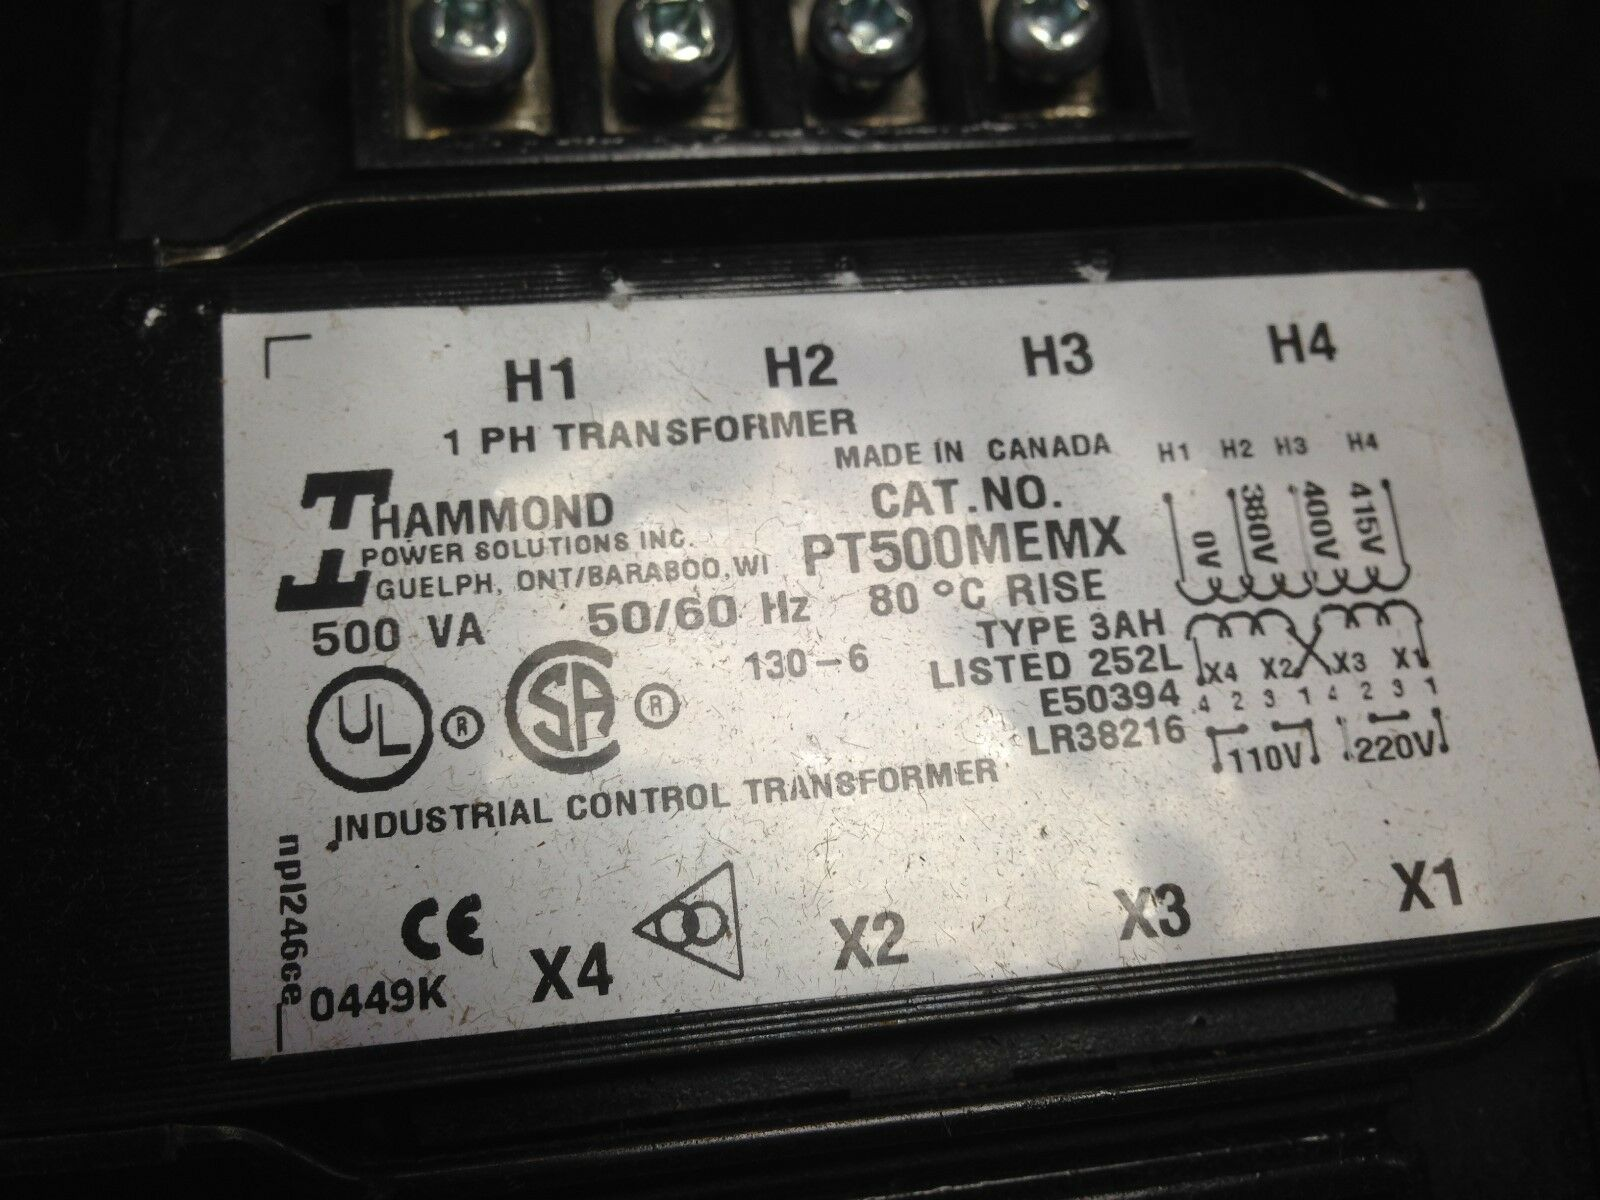 100VA 50//60 Hz Hammond Industrial Control Transformer PT100MQMJ 1PH